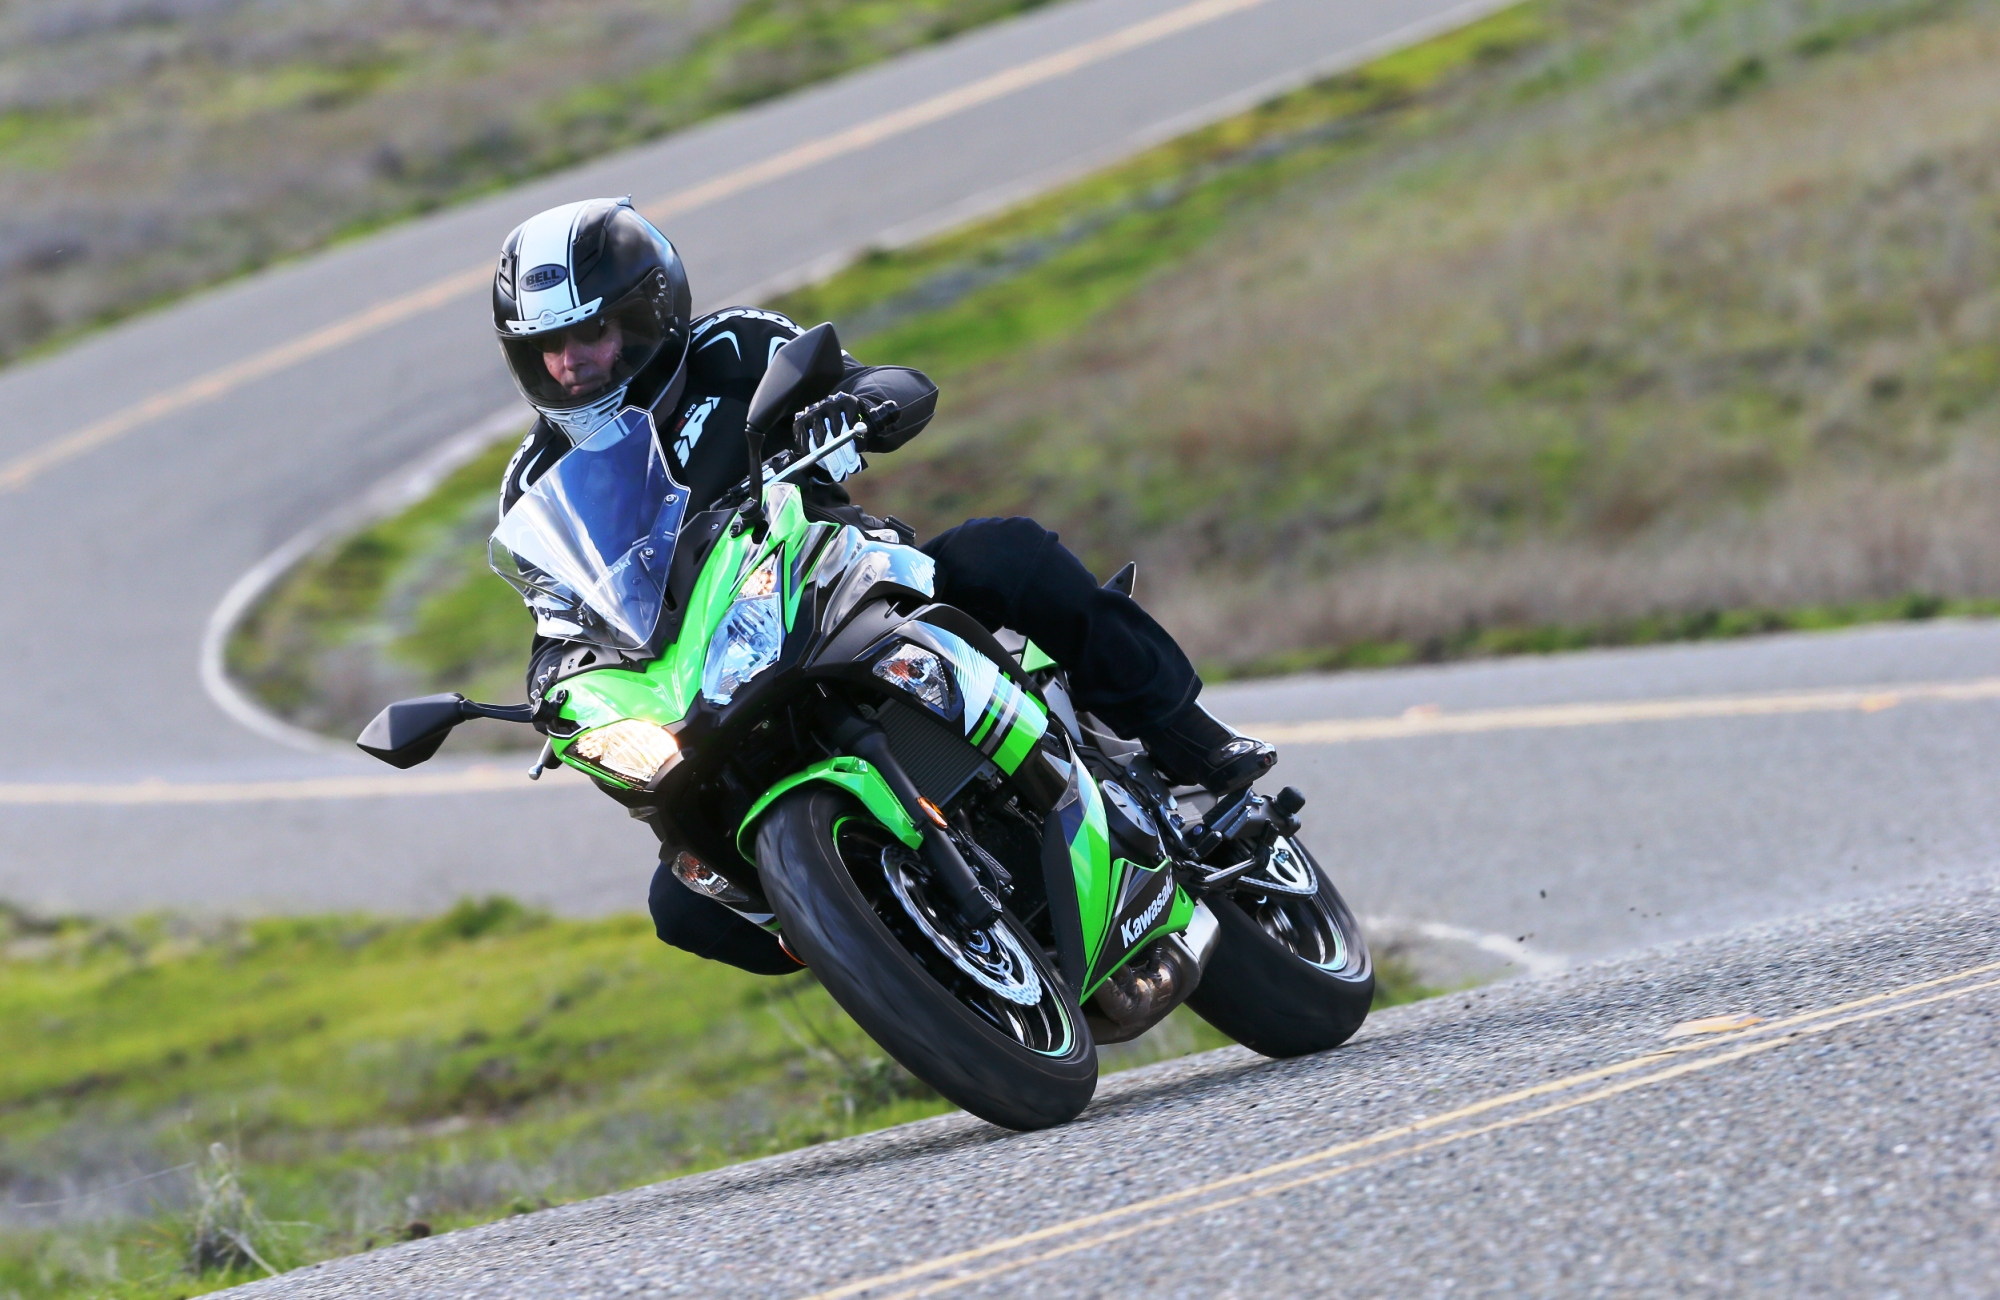 2017 Kawasaki Ninja 650 first ride review - RevZilla